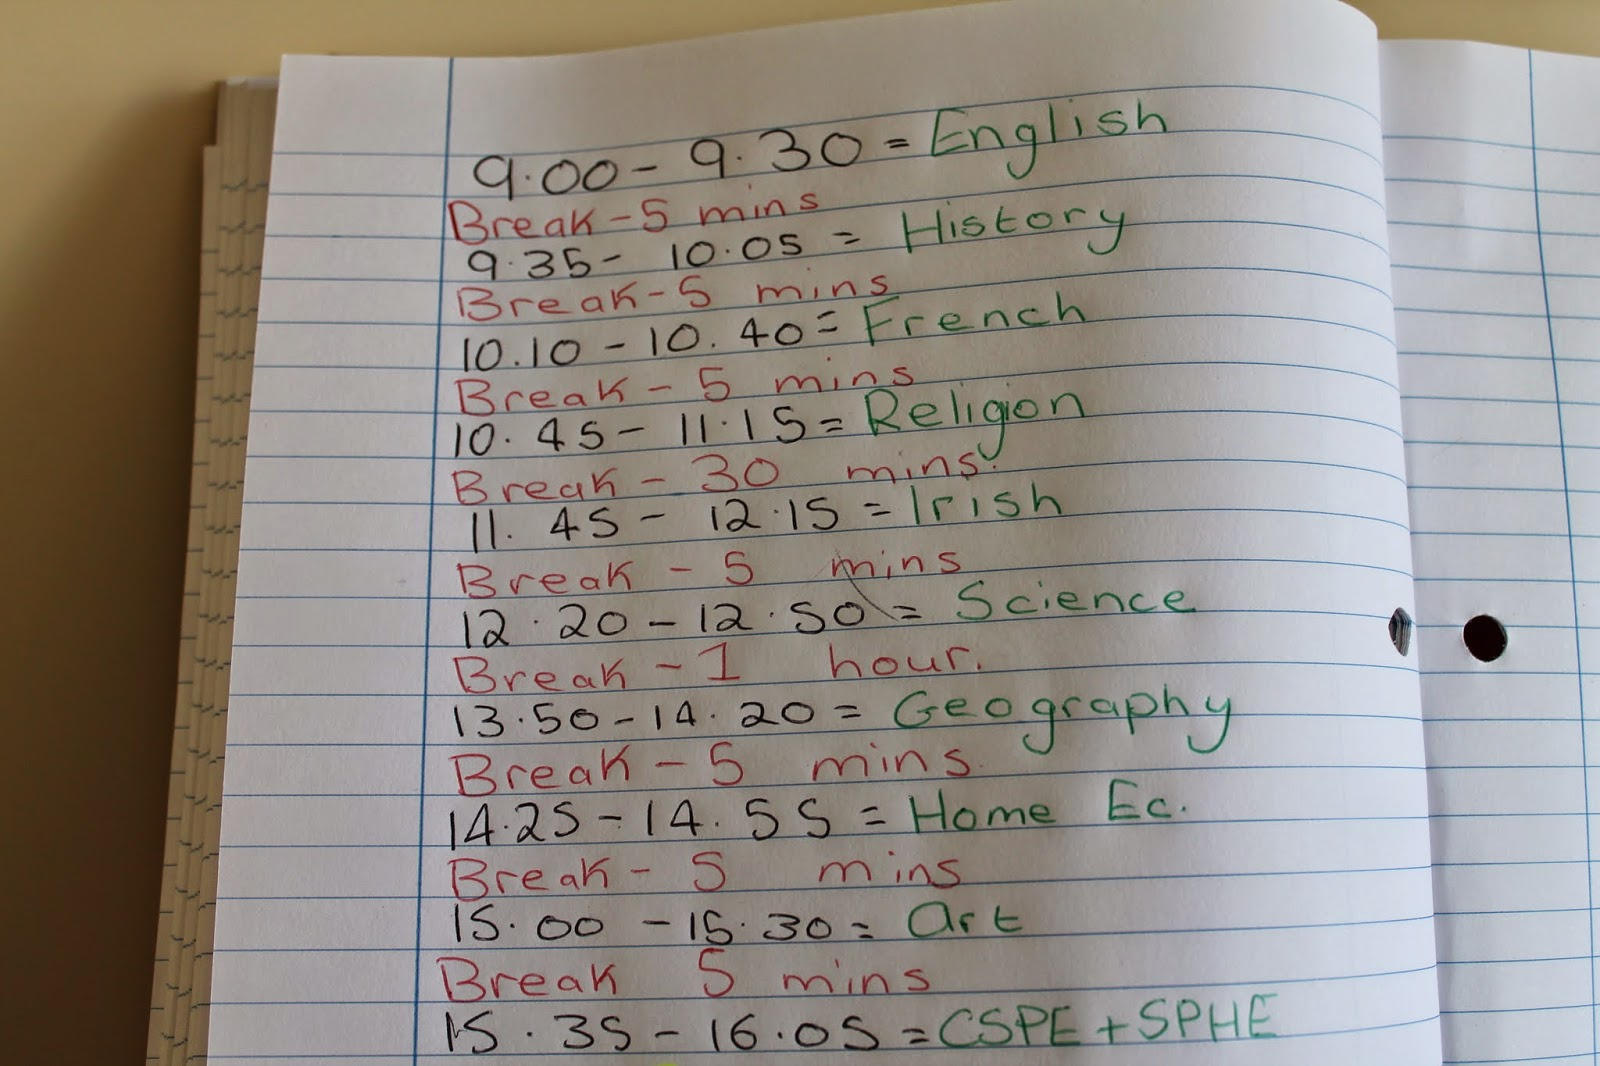 alison ciara draw up a revision timetable